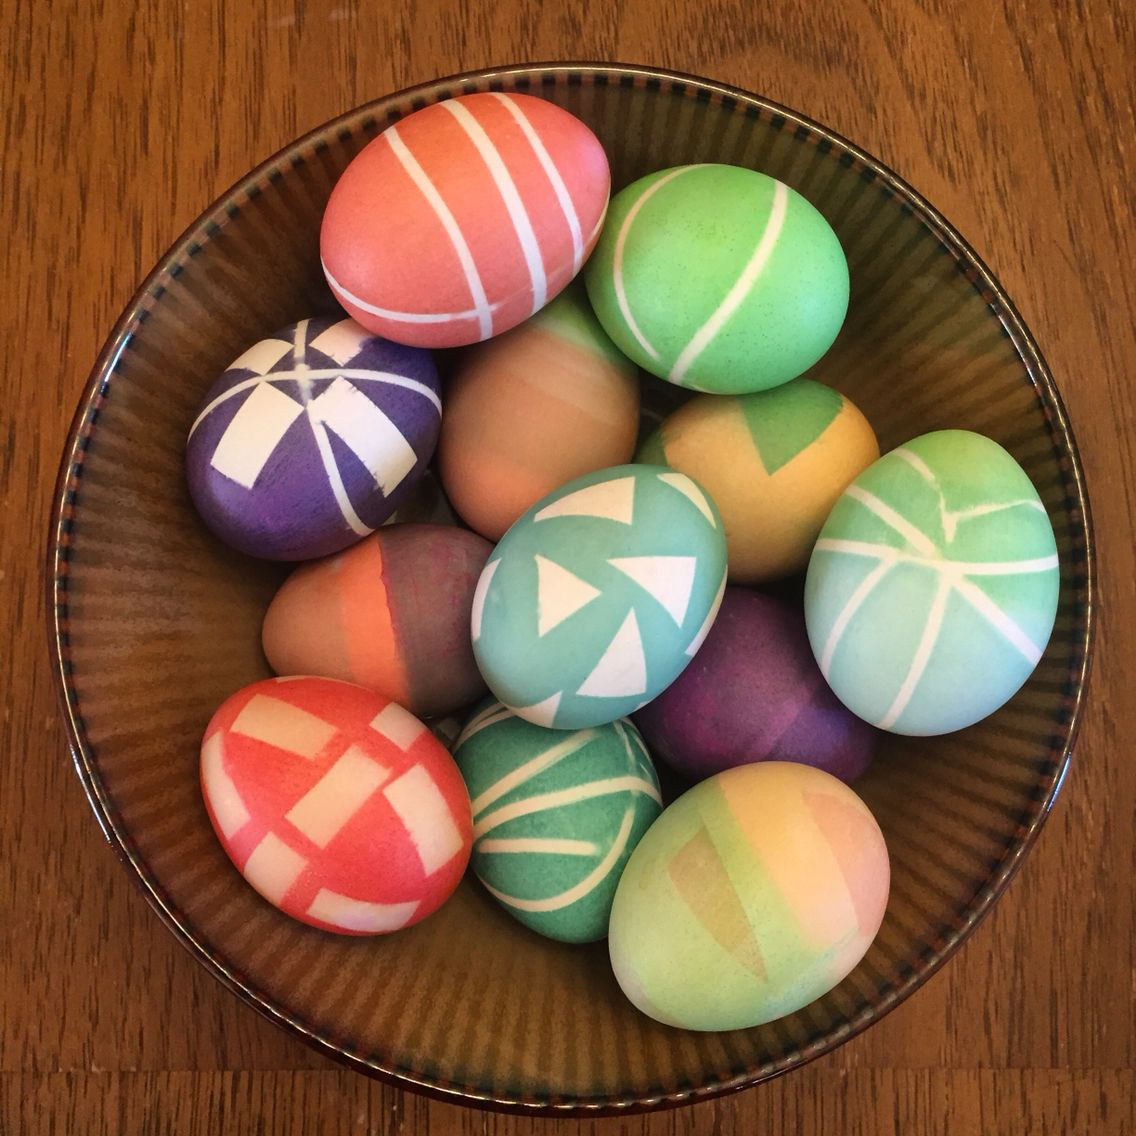 Abstract Easter eggs- rubber bands & electrical tape